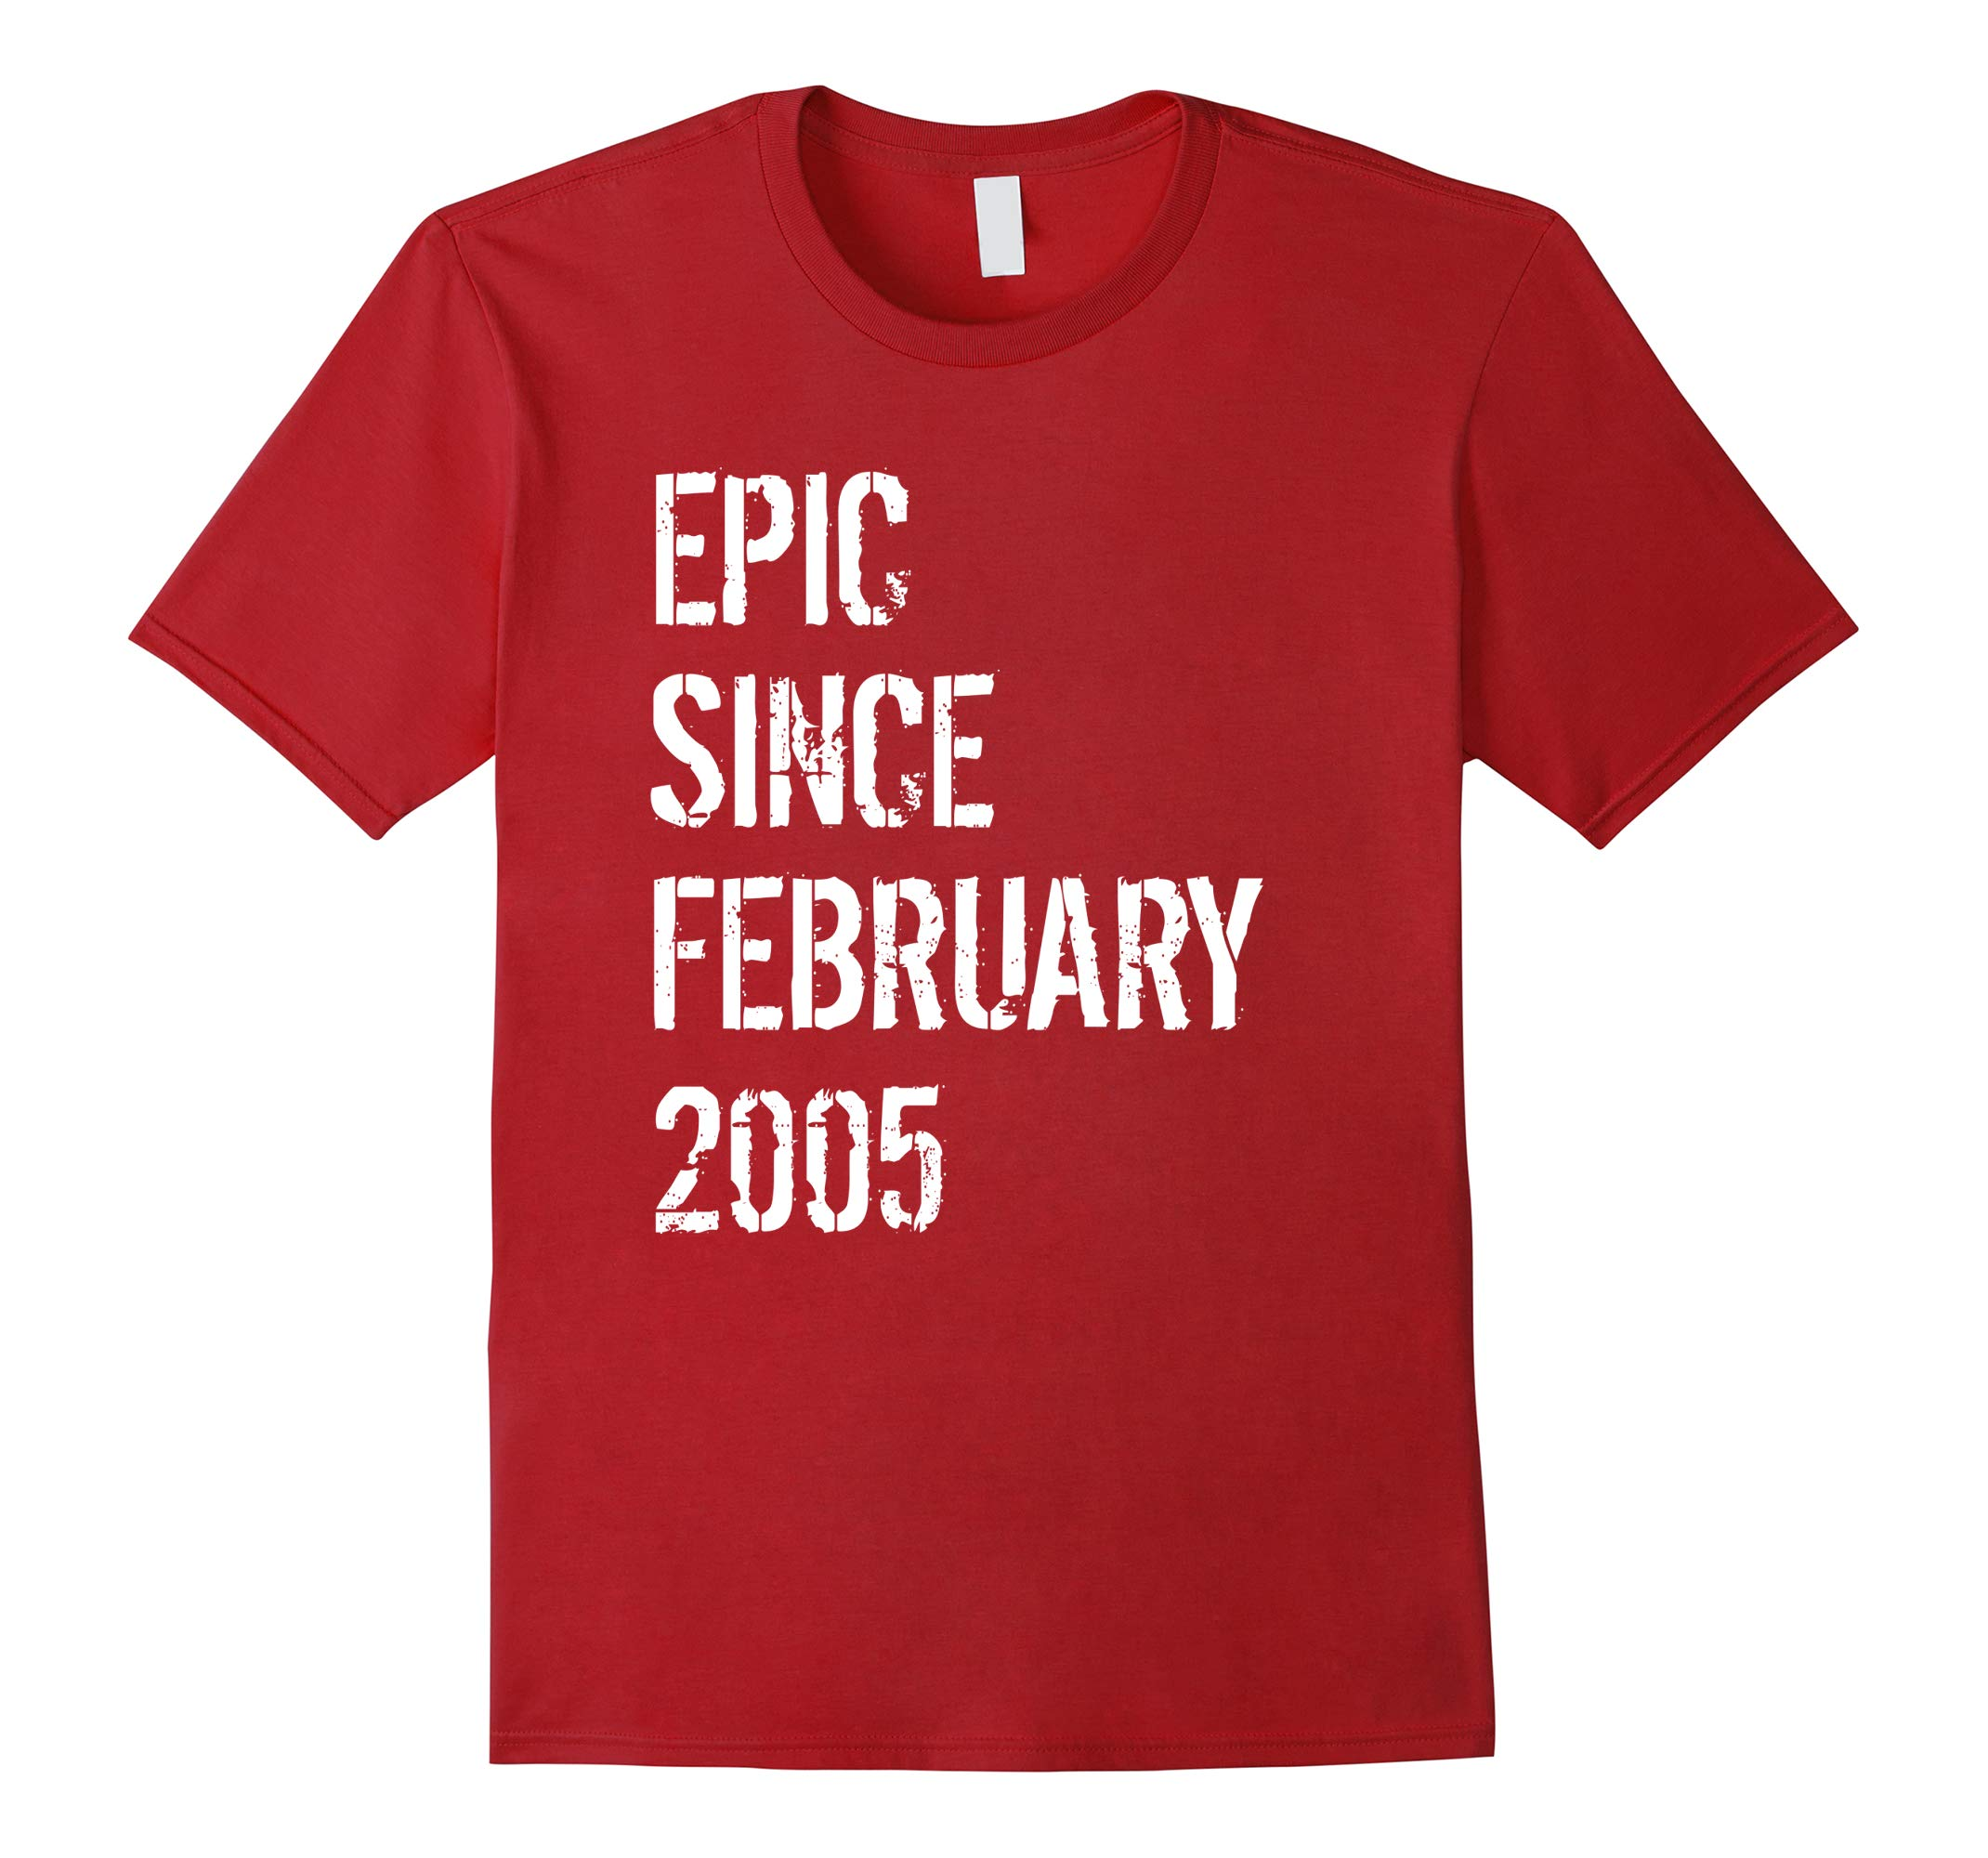 13 Year Old Born Gift Shirt In February 2005 13th Birthday-RT